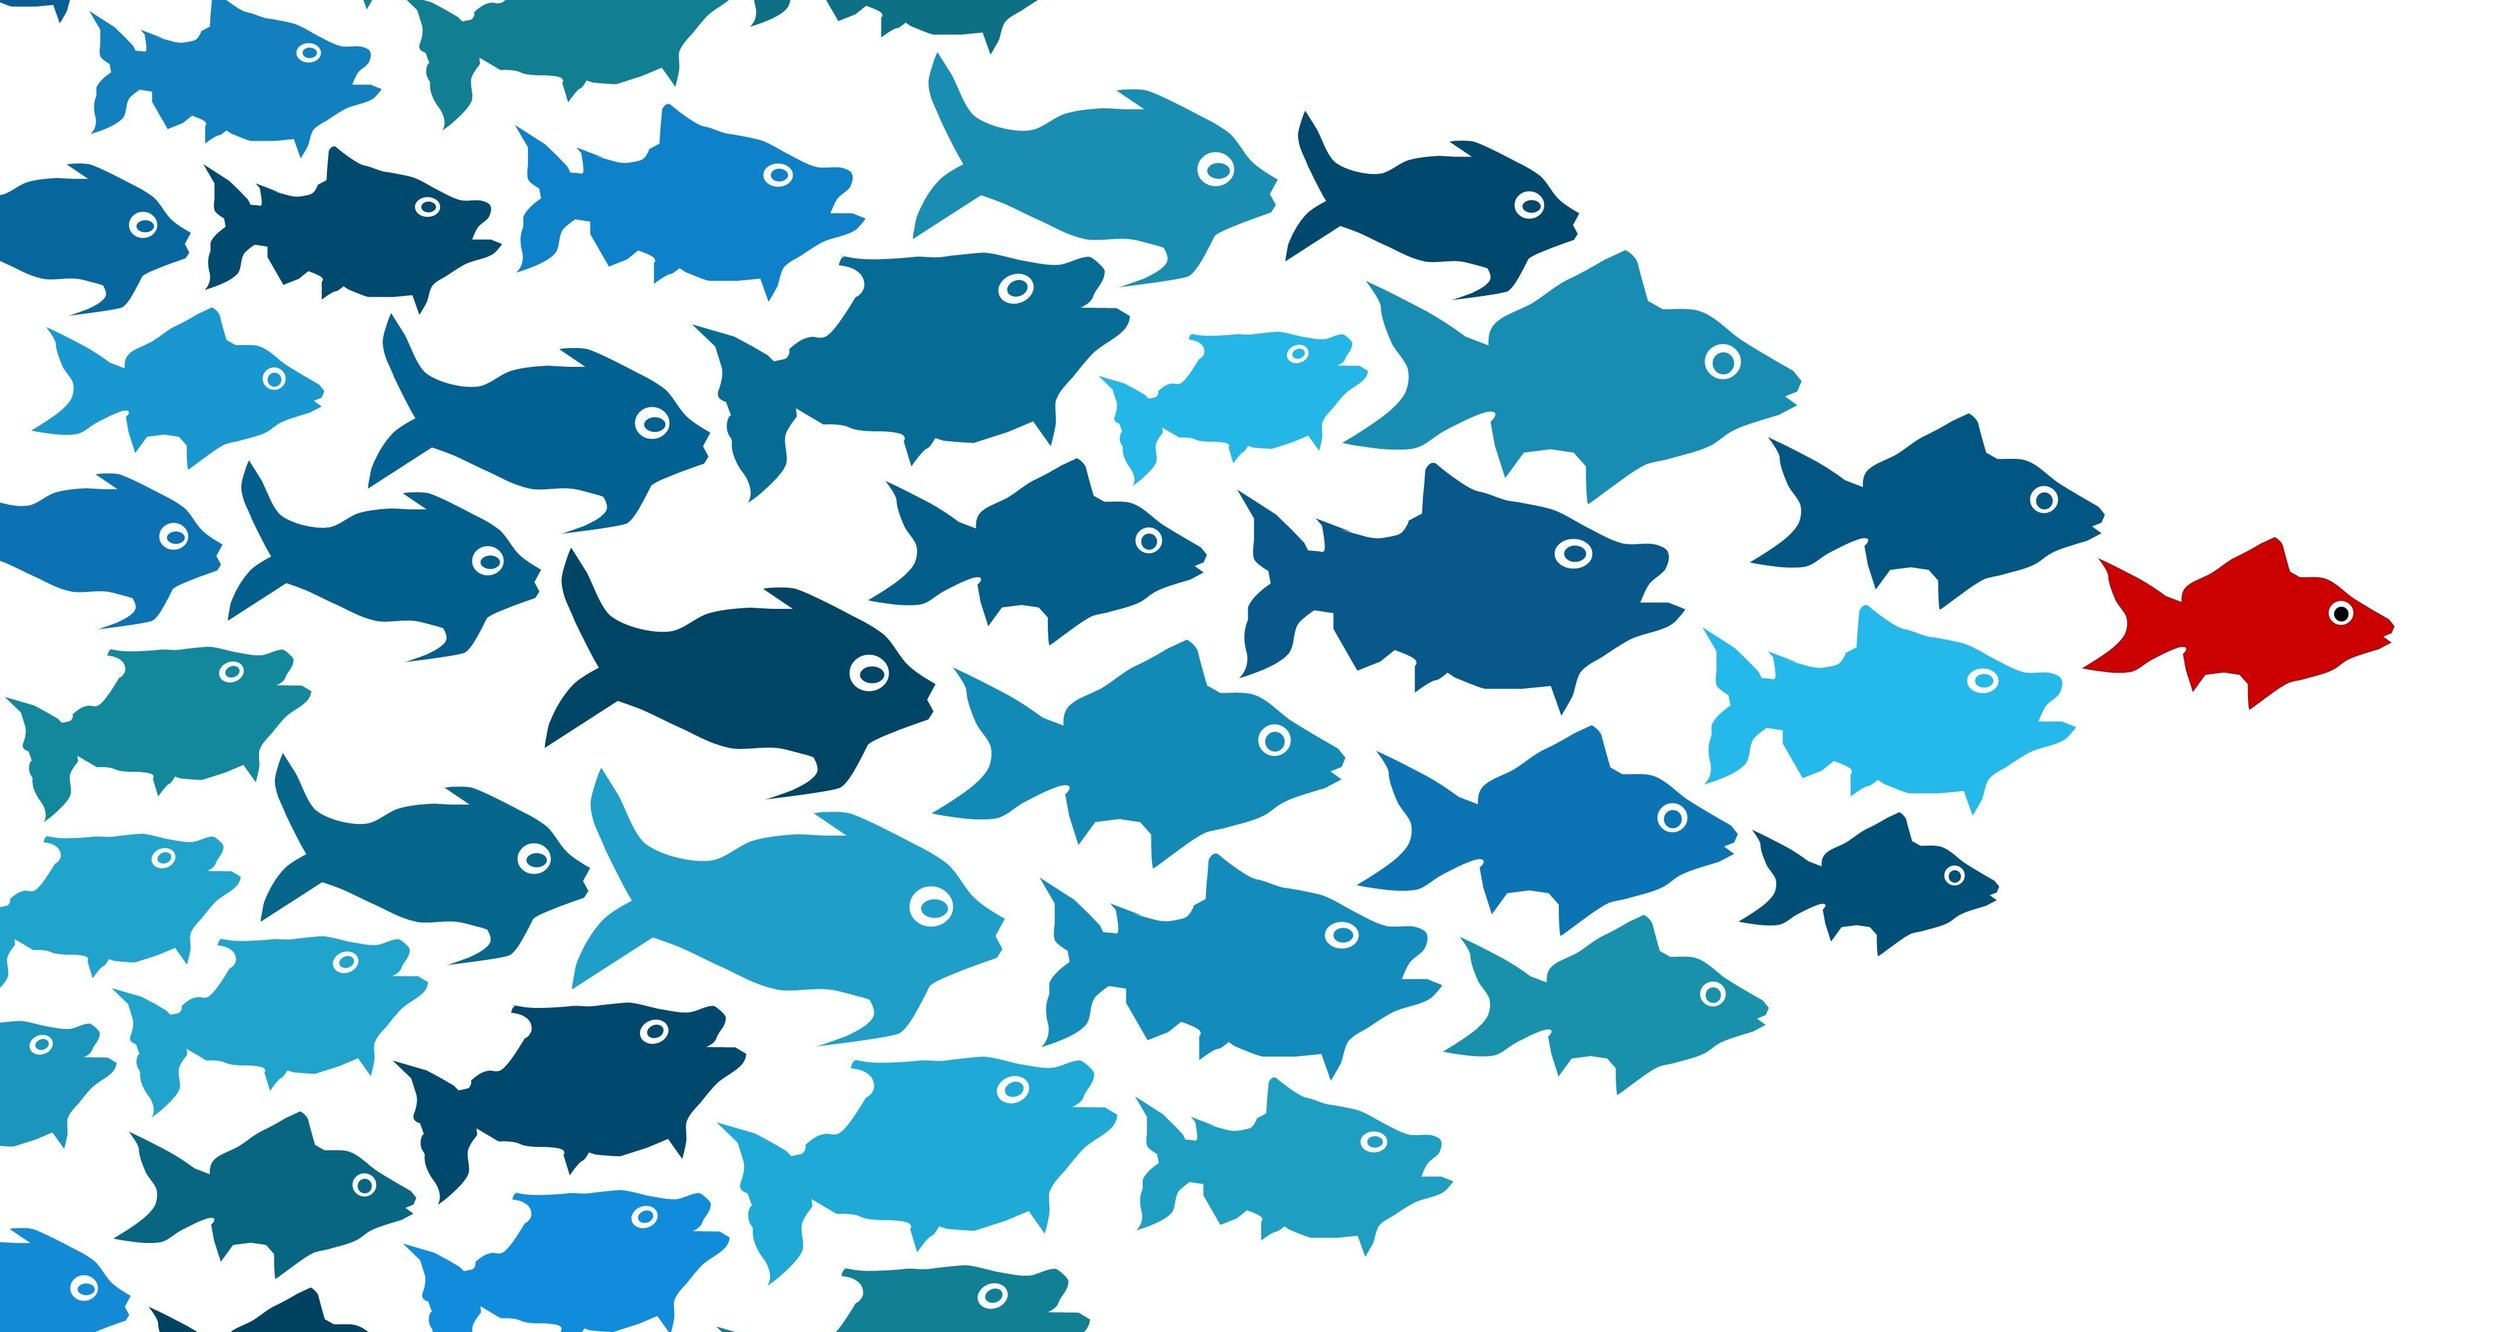 Blue fish following an orange fish who is leading the pack, or school of fish